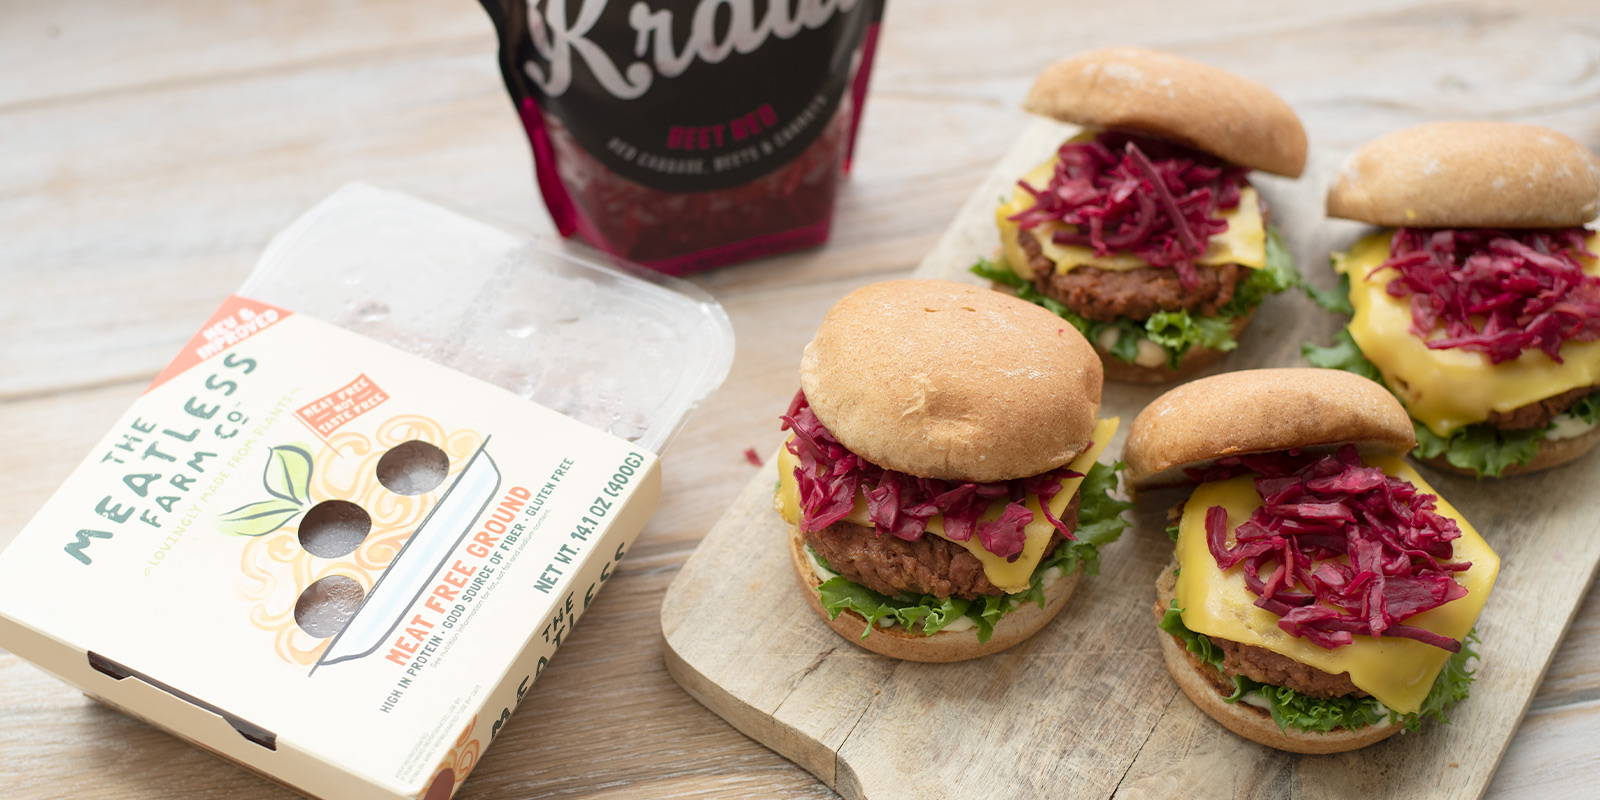 Meatless Farms and Cleveland Kraut sauerkraut come together for a tasty, plant-based Labor Day meal.